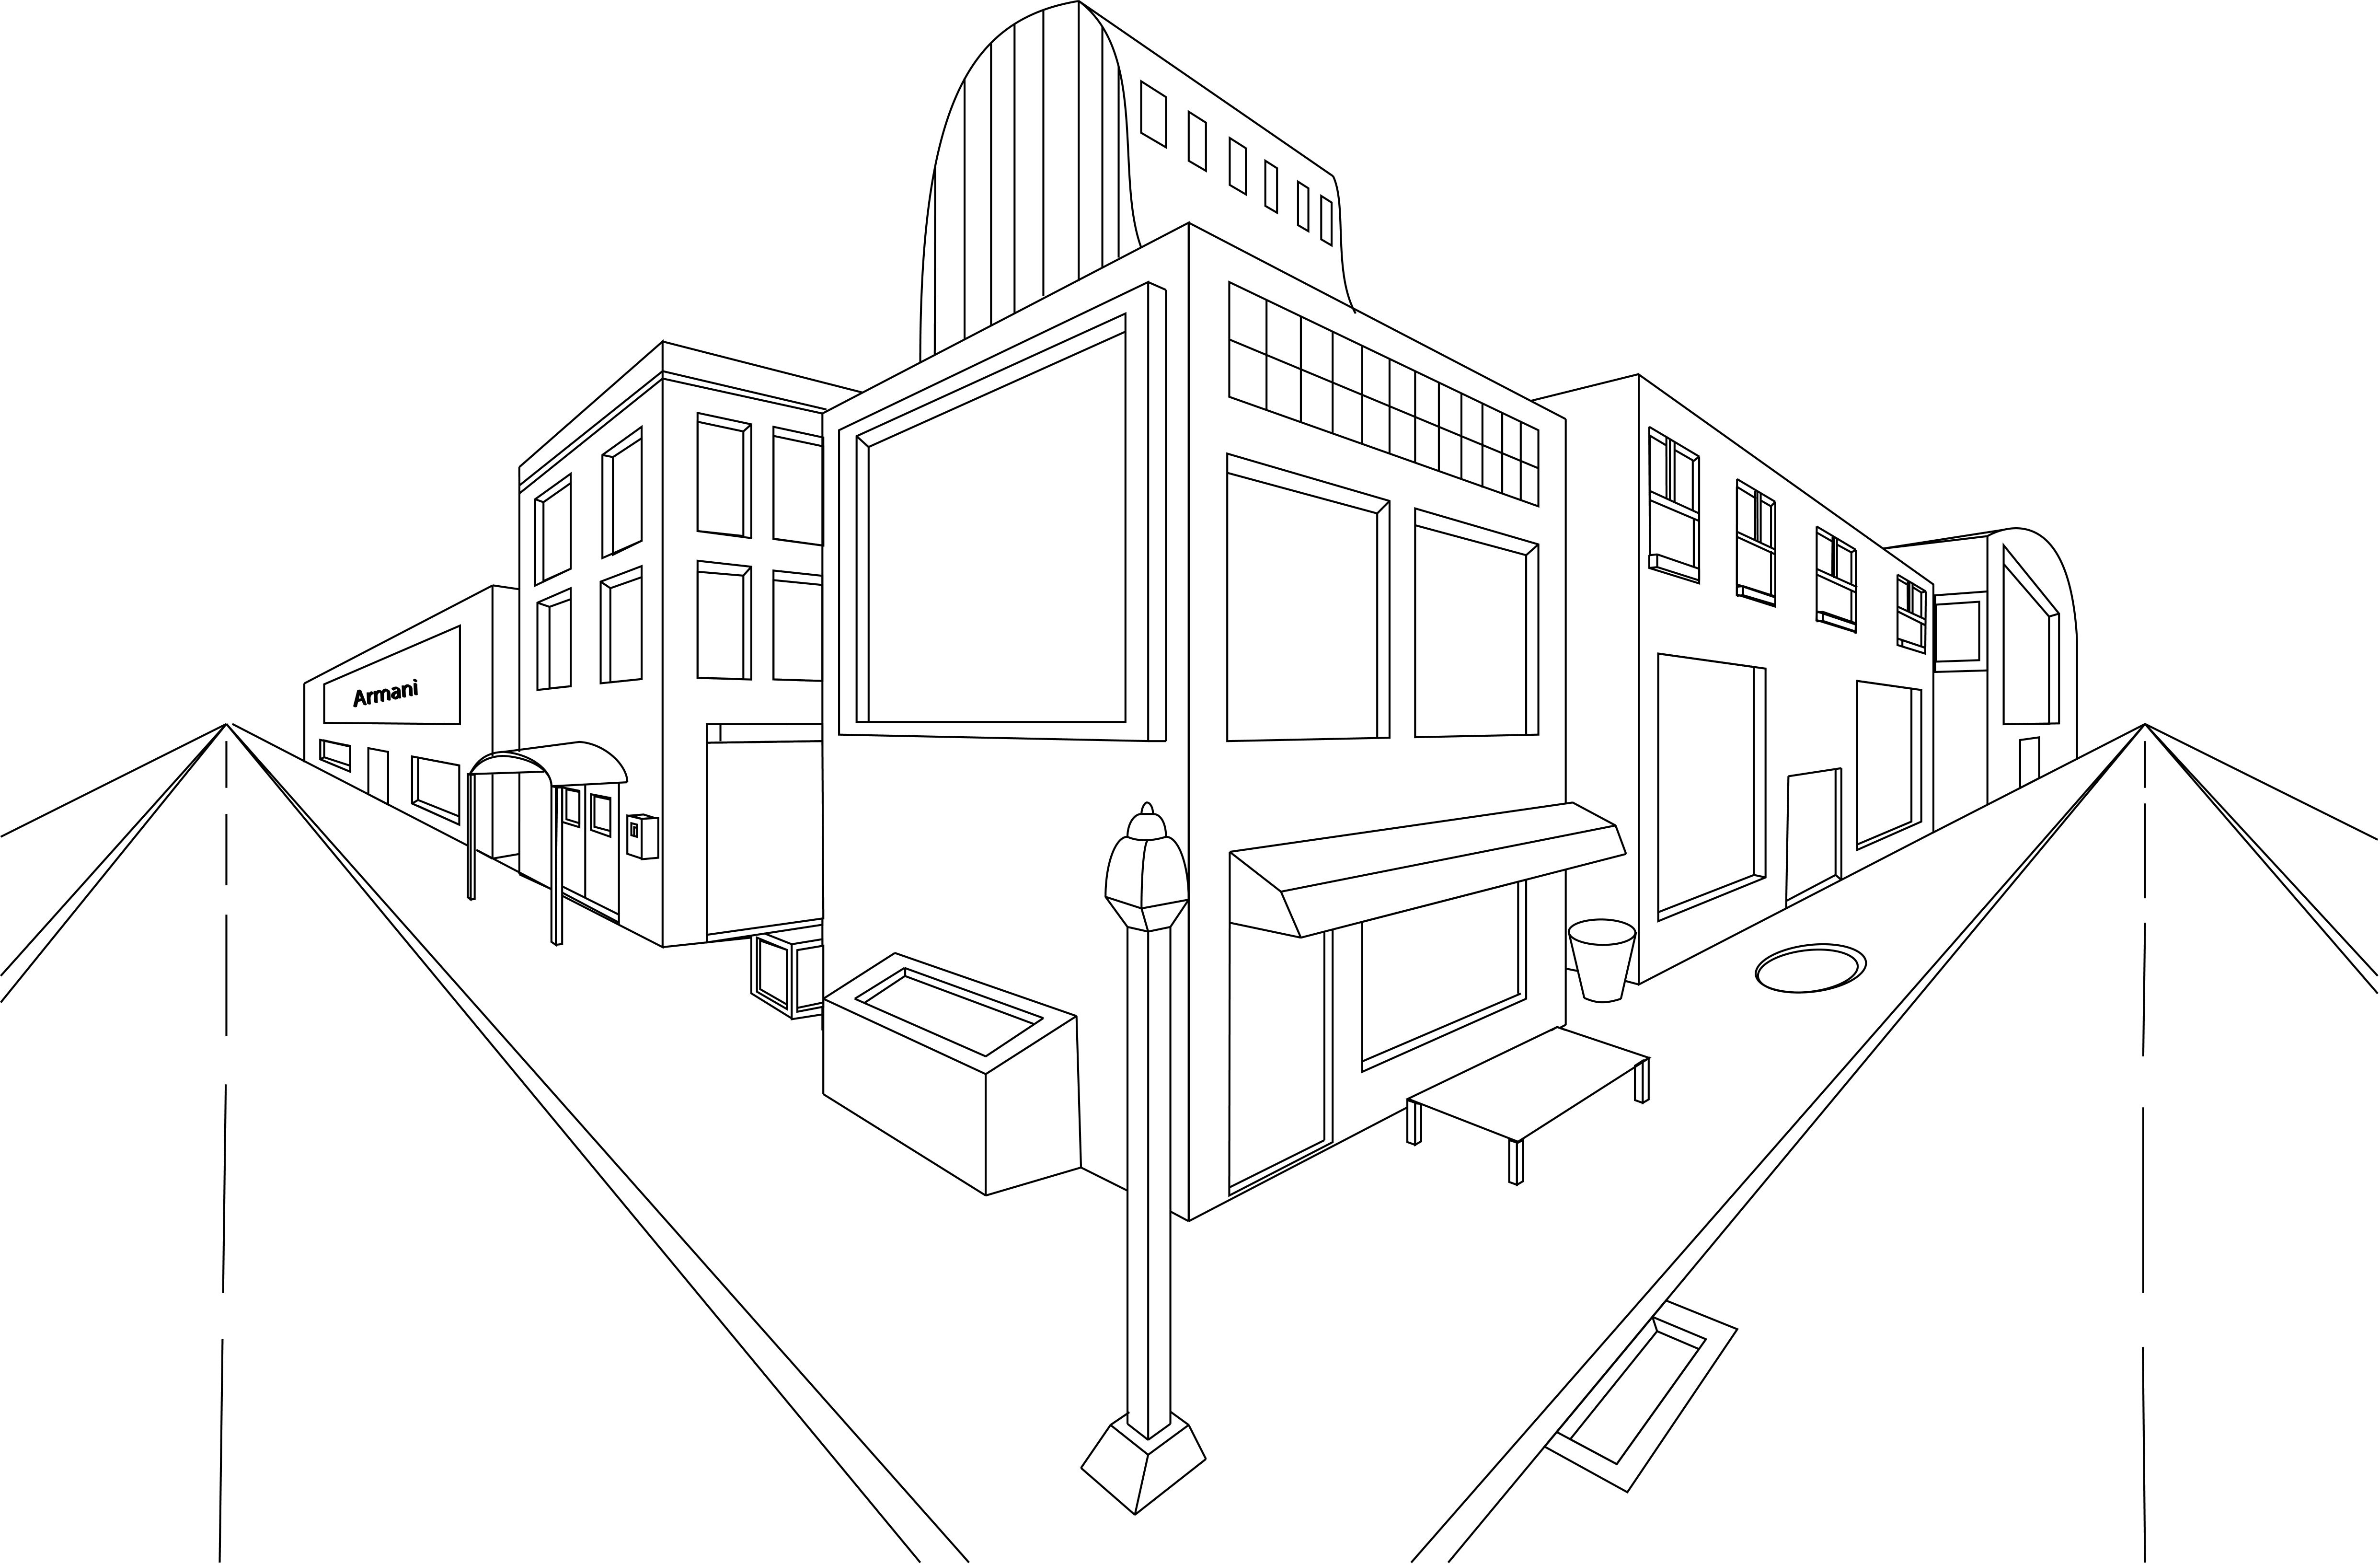 Perspective Street Drawing